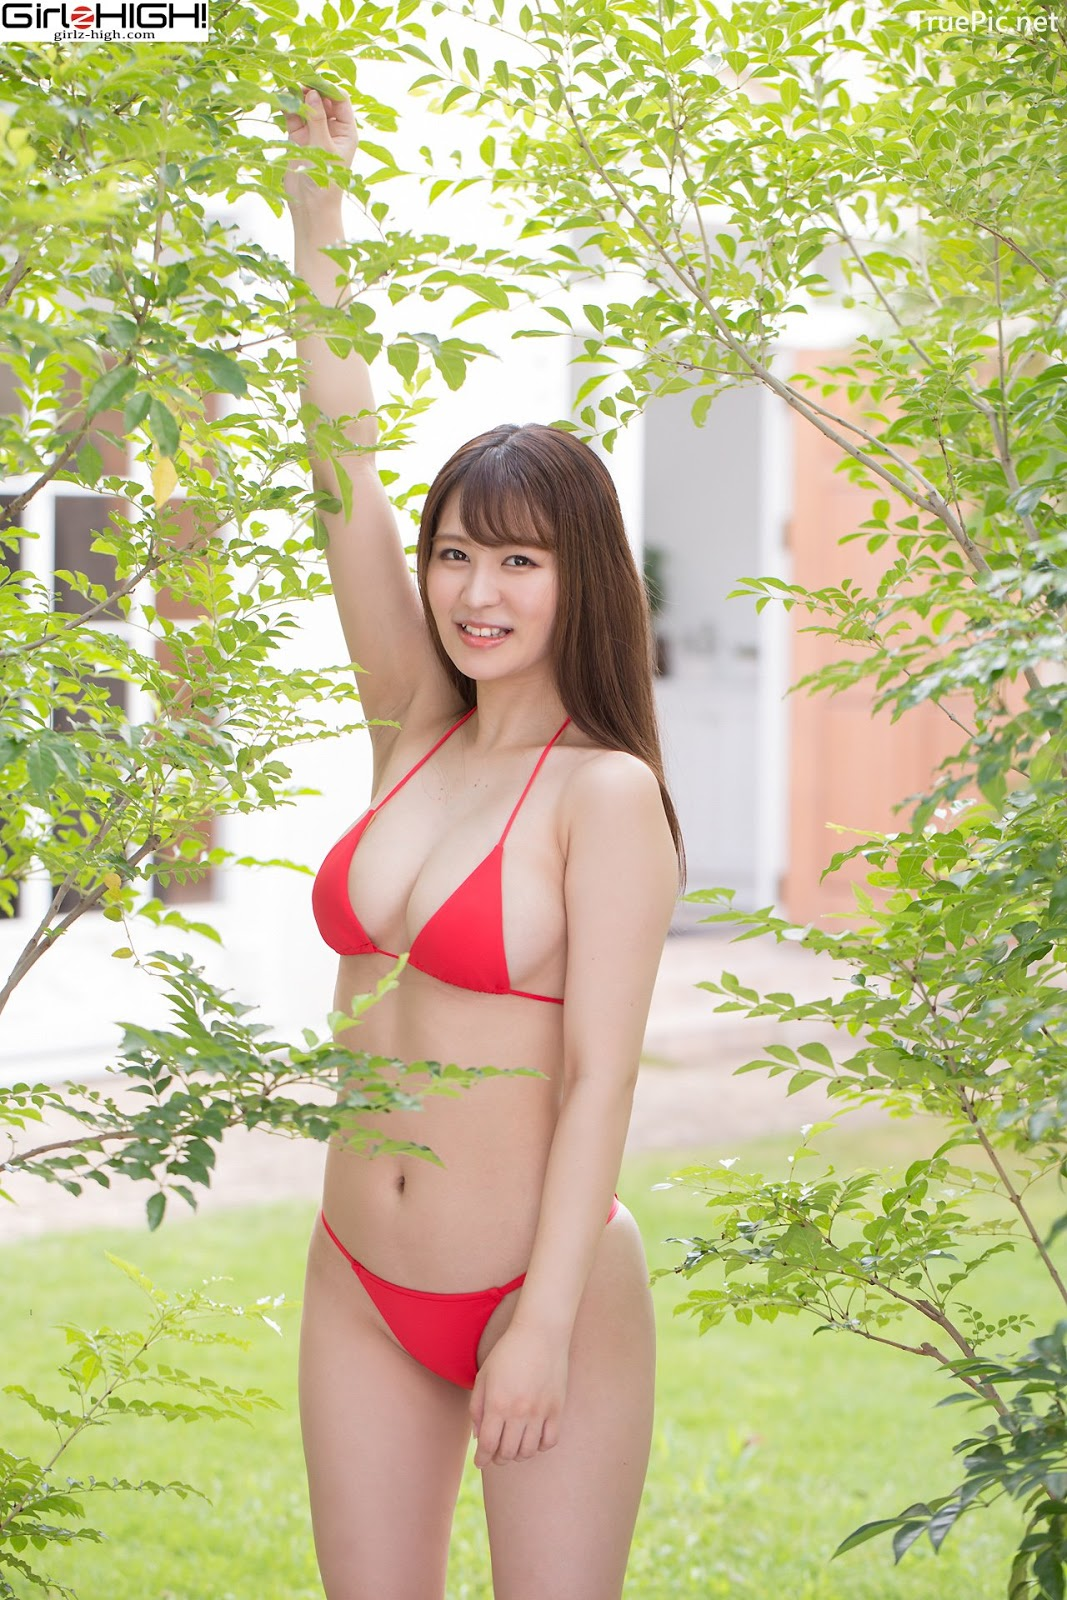 Image Japanese Gravure Idol - Kasumi Yoshinaga - Girlz High Album - TruePic.net - Picture-6